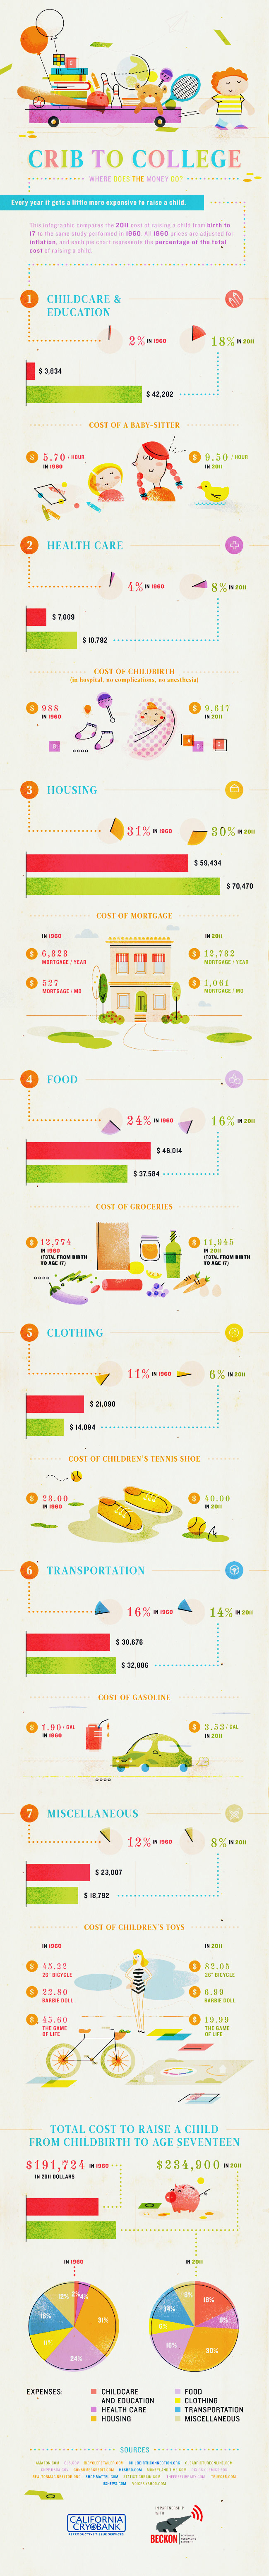 Crib to College - Where Does the Money Go?